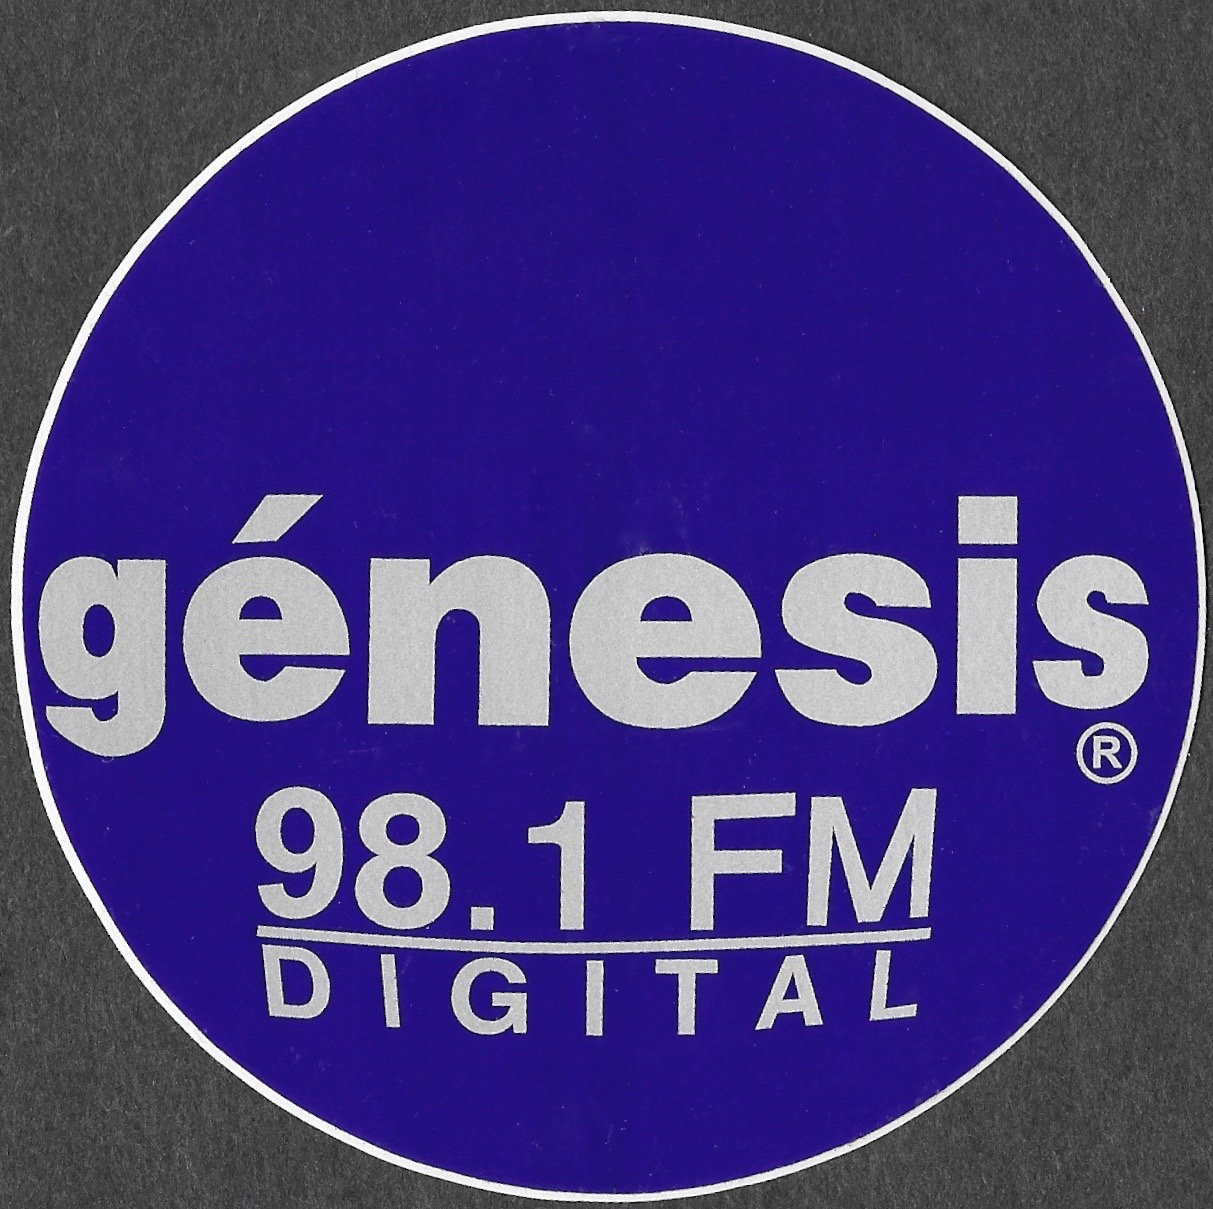 XHRL Genesis 981 FM Broadcasts From Monterrey Nuevo Leon Mexico